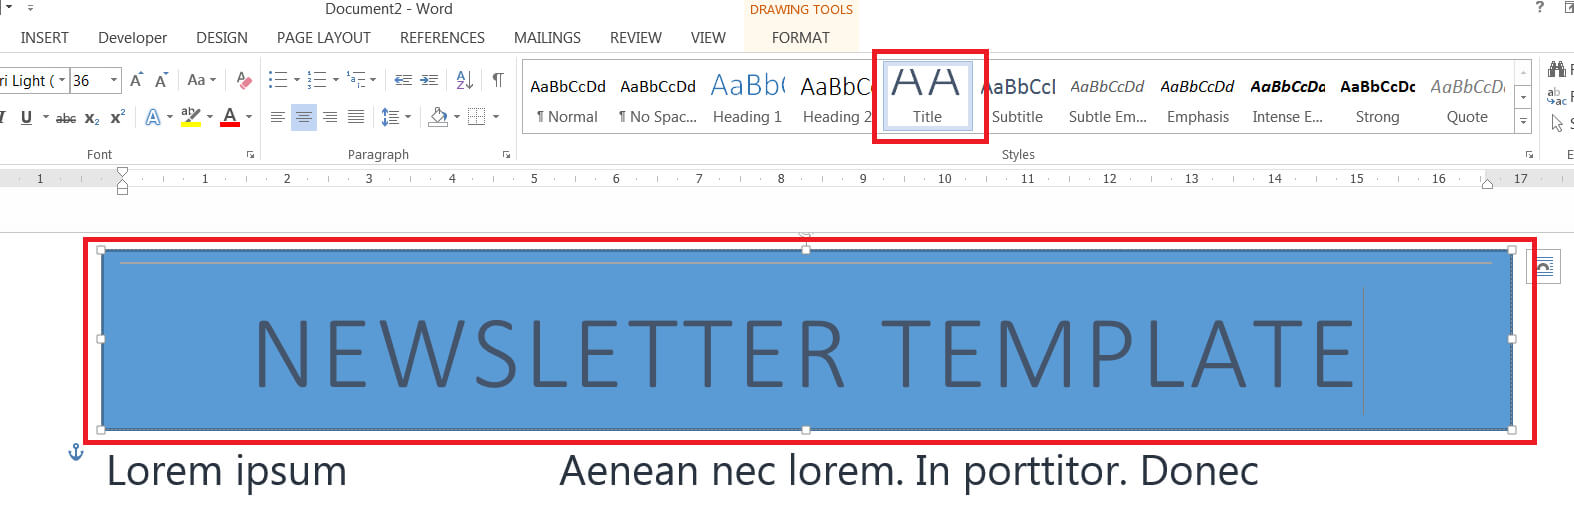 How To Easily Create A Newsletter Template In Microsoft Word Within Banner Template Word 2010